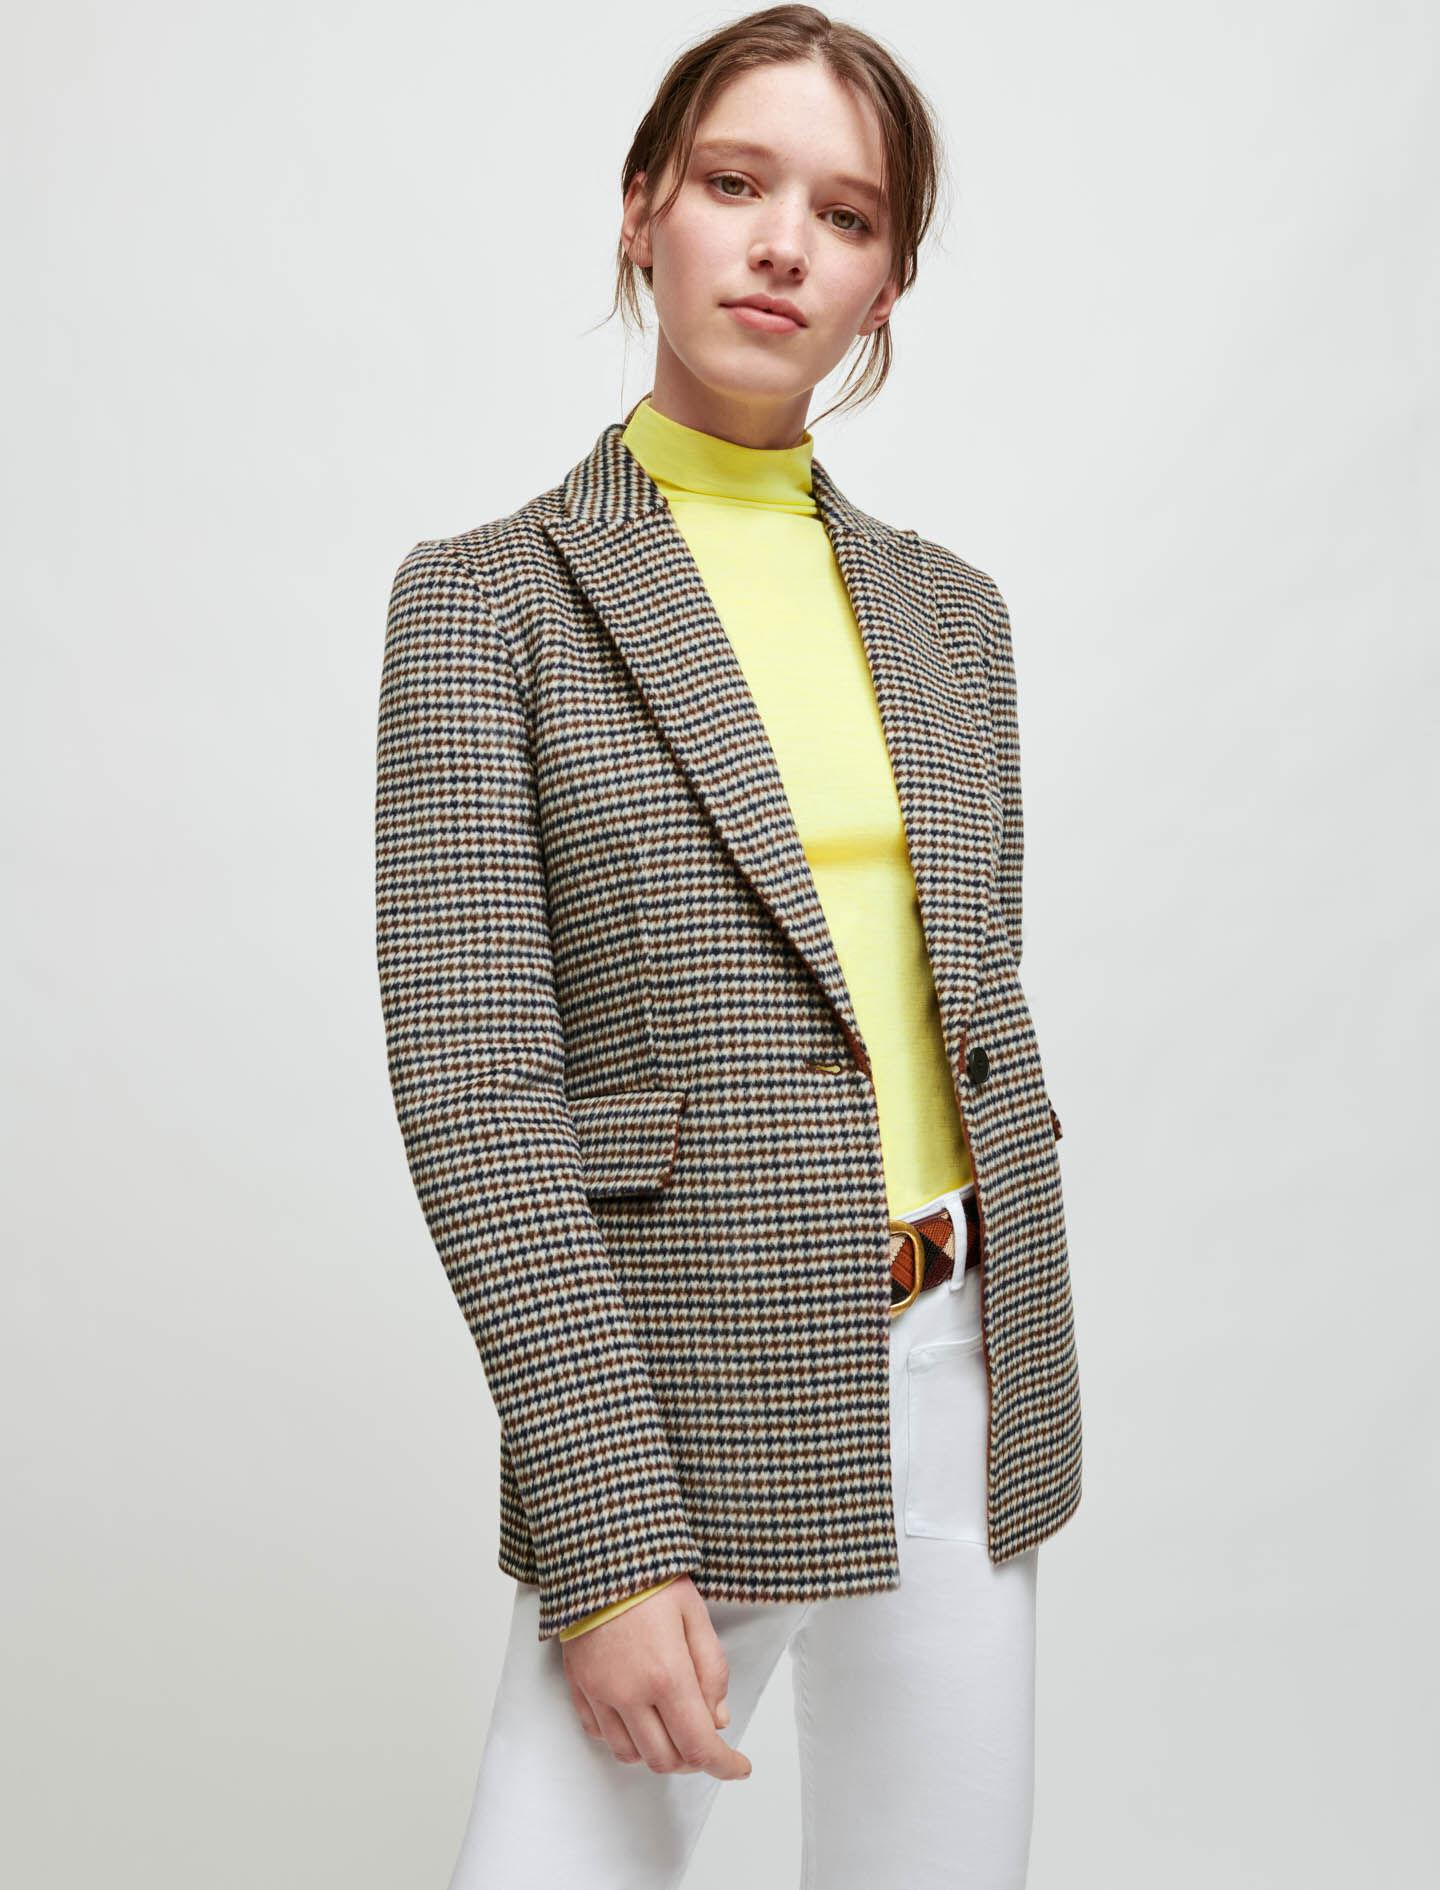 DOUBLE-SIDED CHECKERED FITTED JACKET